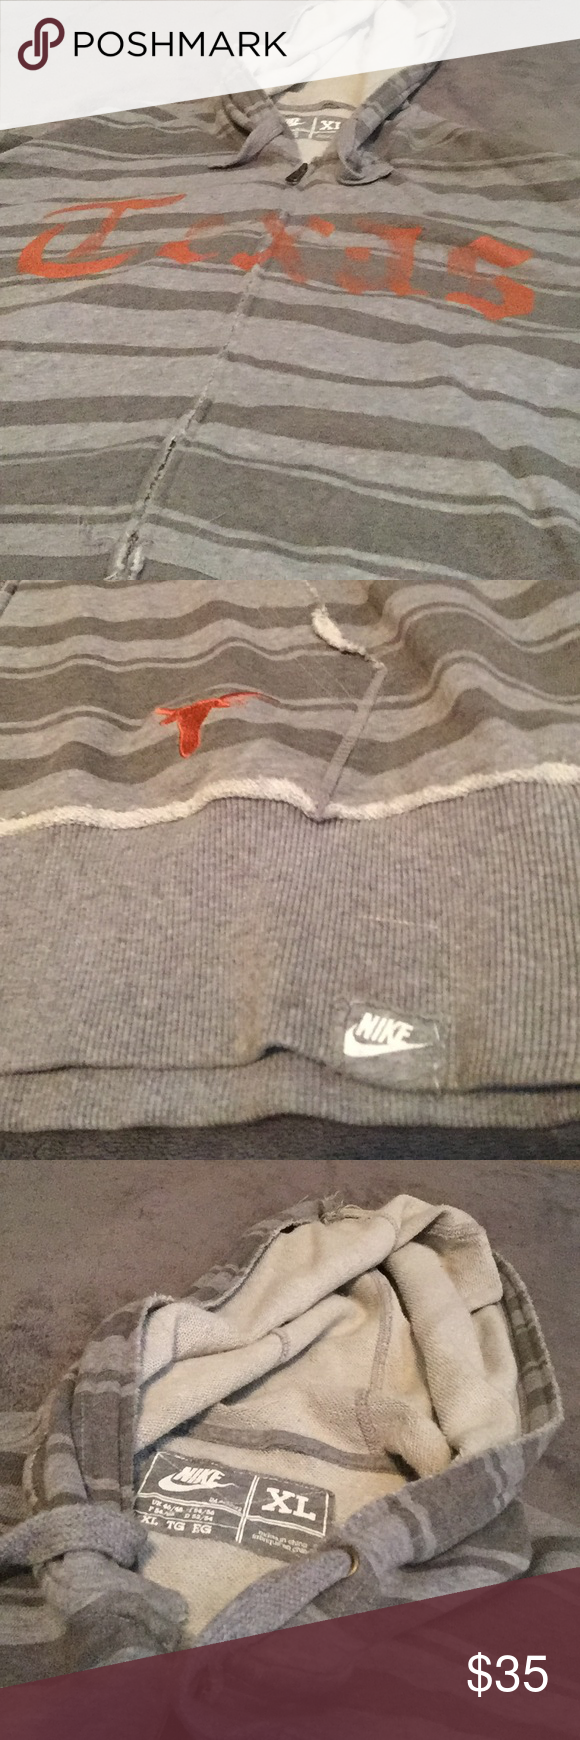 Nike Texas Longhorns zip up hoodie. Like new! No rips, stains or holes, great condition! Nike Sweaters Zip Up